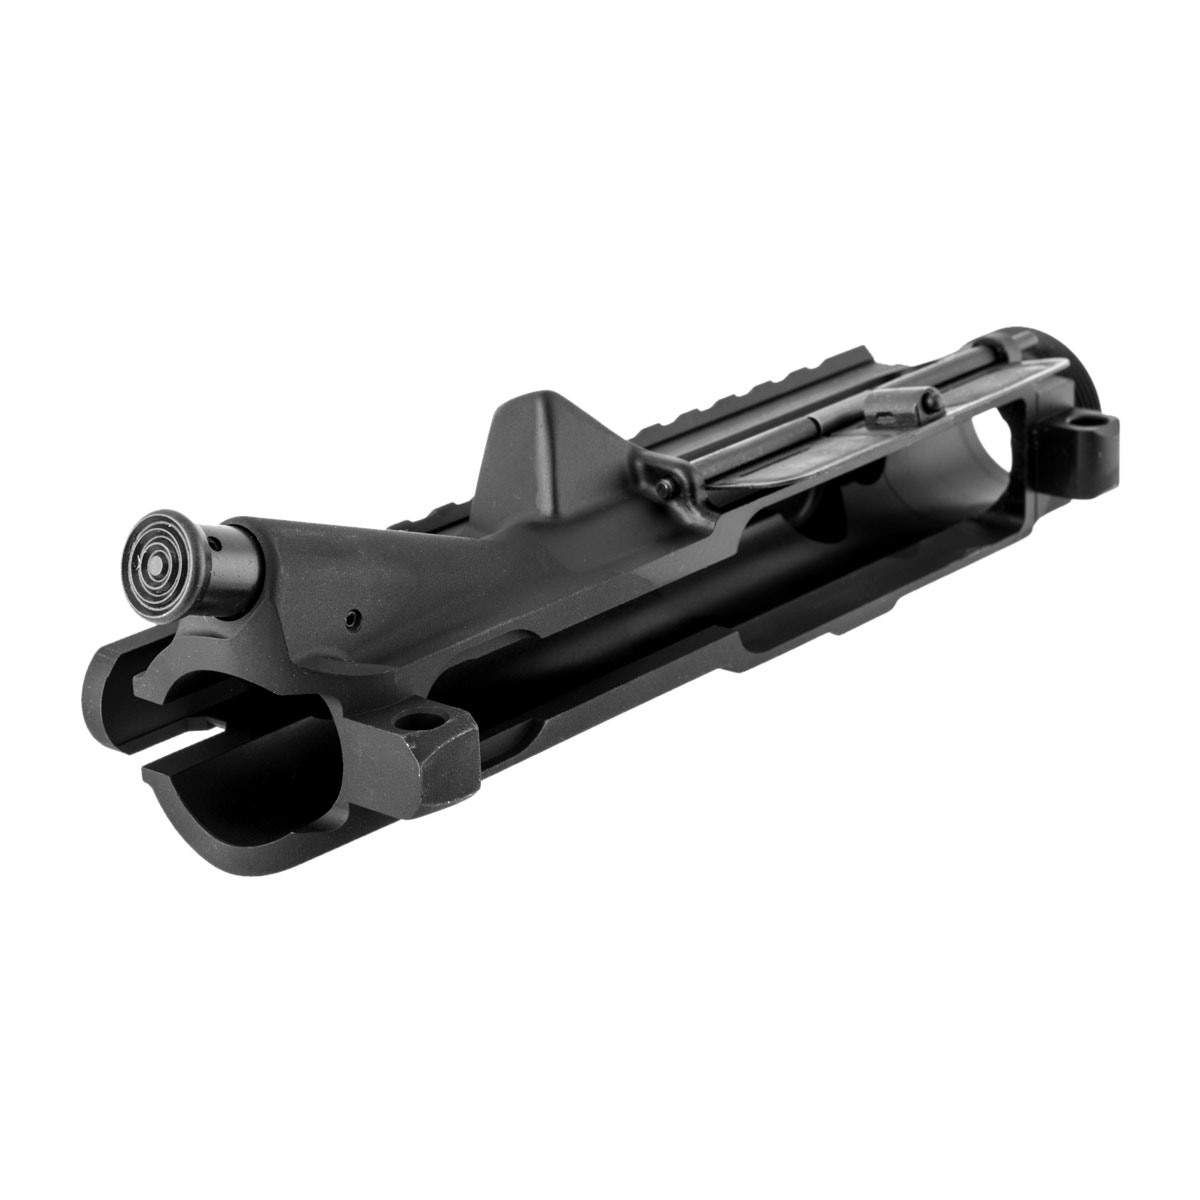 ROCK RIVER ARMS FORGED A4 UPPER RECEIVER ASSEMBLY